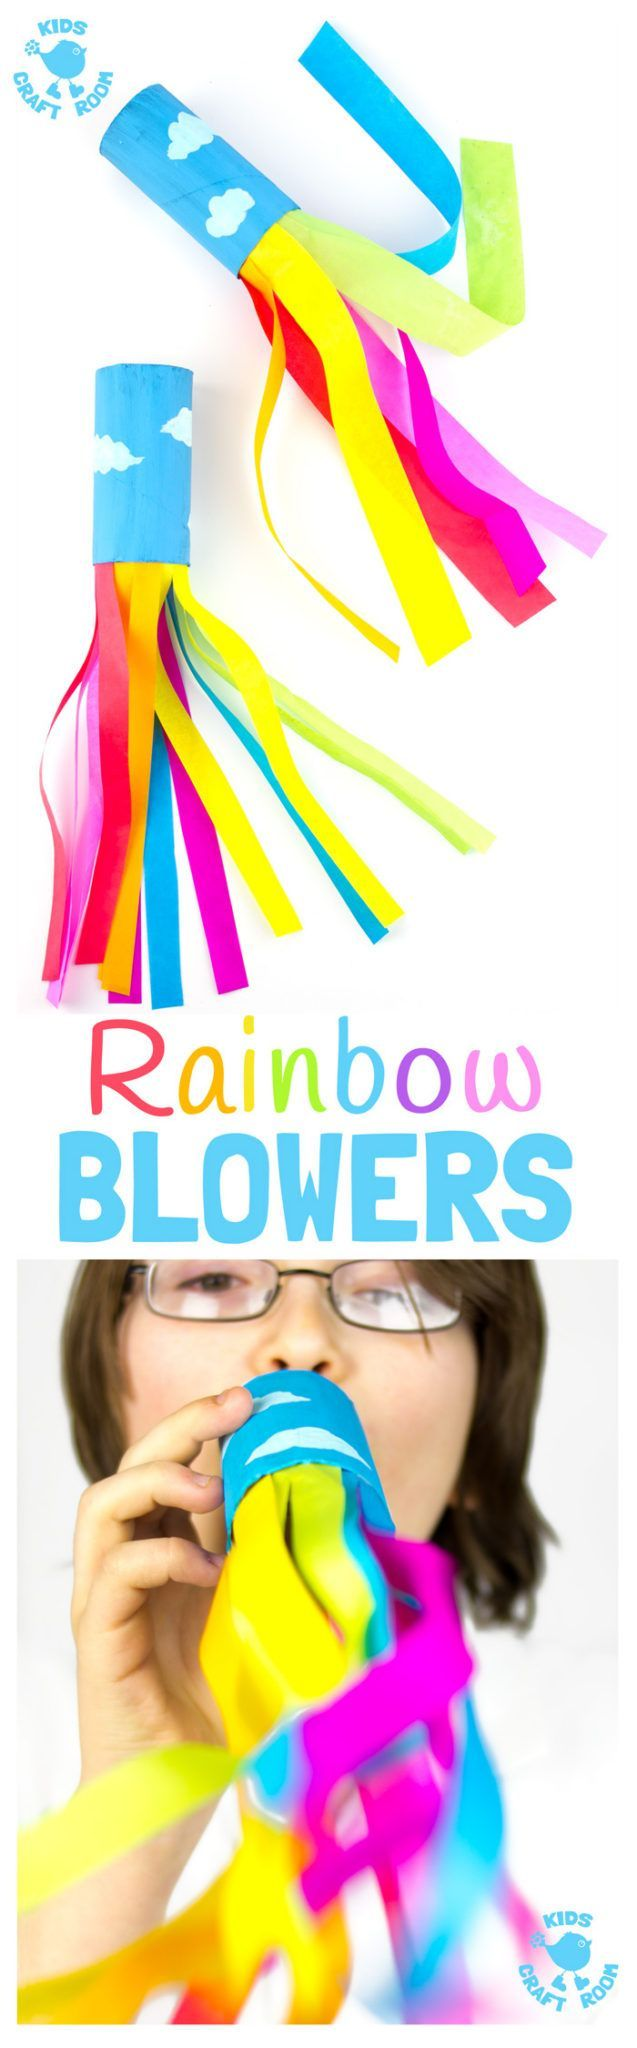 CARDBOARD TUBE RAINBOW BLOWERS are a colourful and fun kids craft! Kids love blowing this rainbow craft to see the streamers